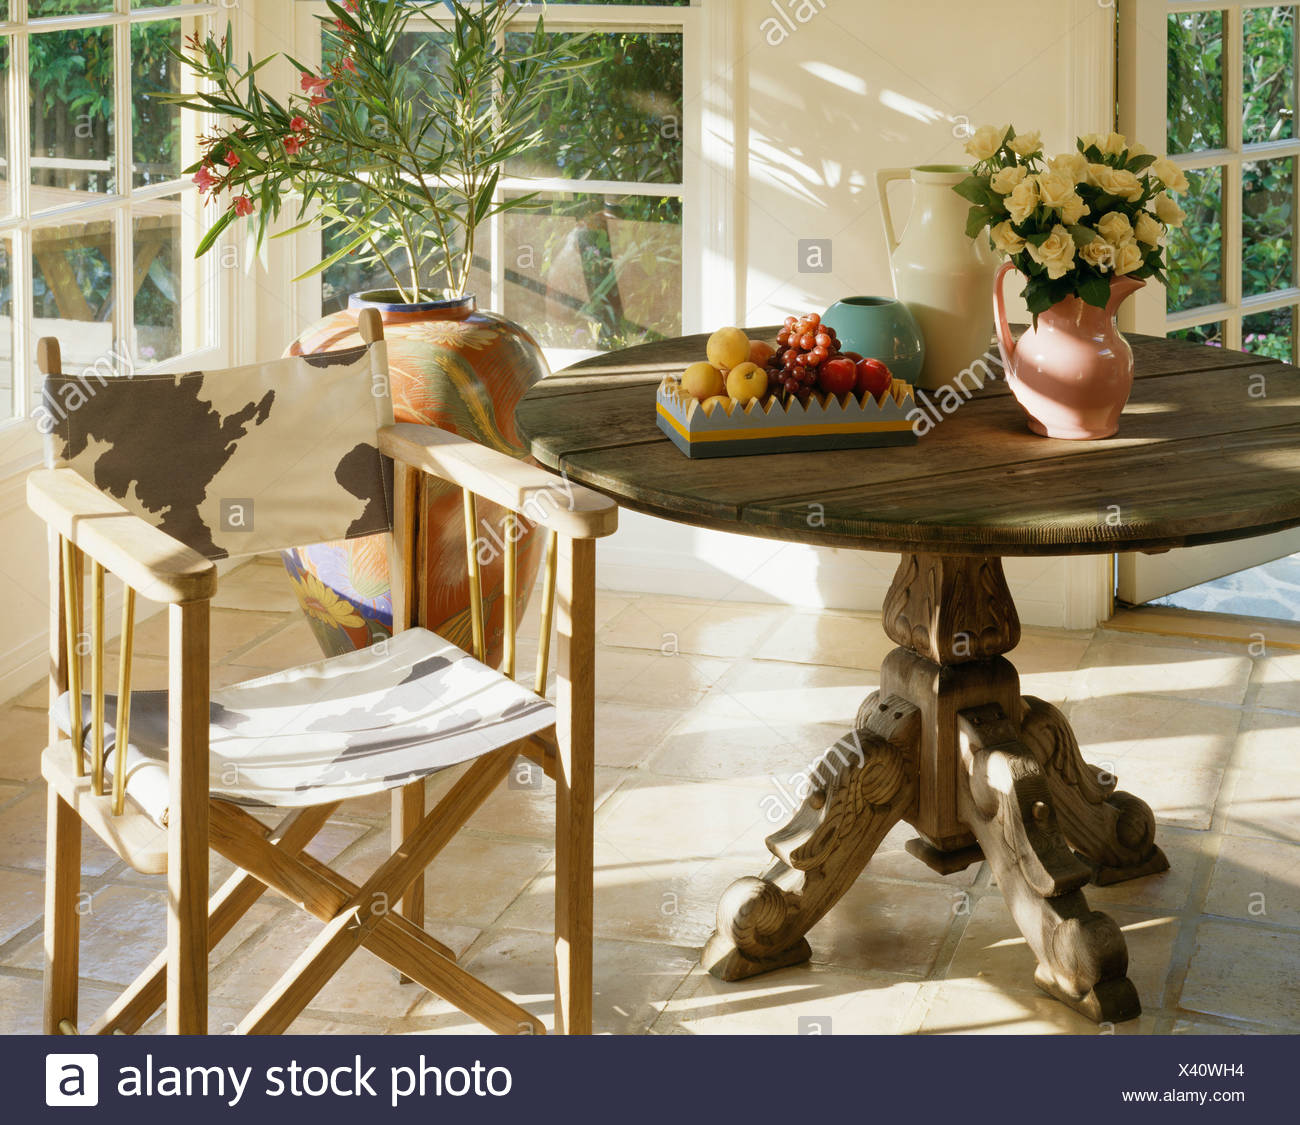 Close-up of circular antique table with animal-print director's chair in  sunny dining room - Close-up Of Circular Antique Table With Animal-print Director's